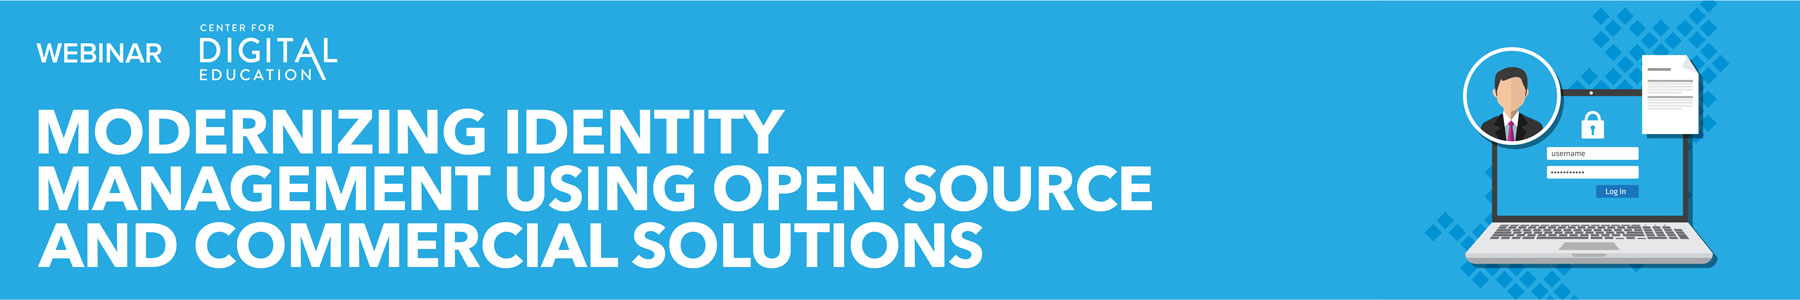 Modernizing Identity Management using Open Source and Commercial Solutions